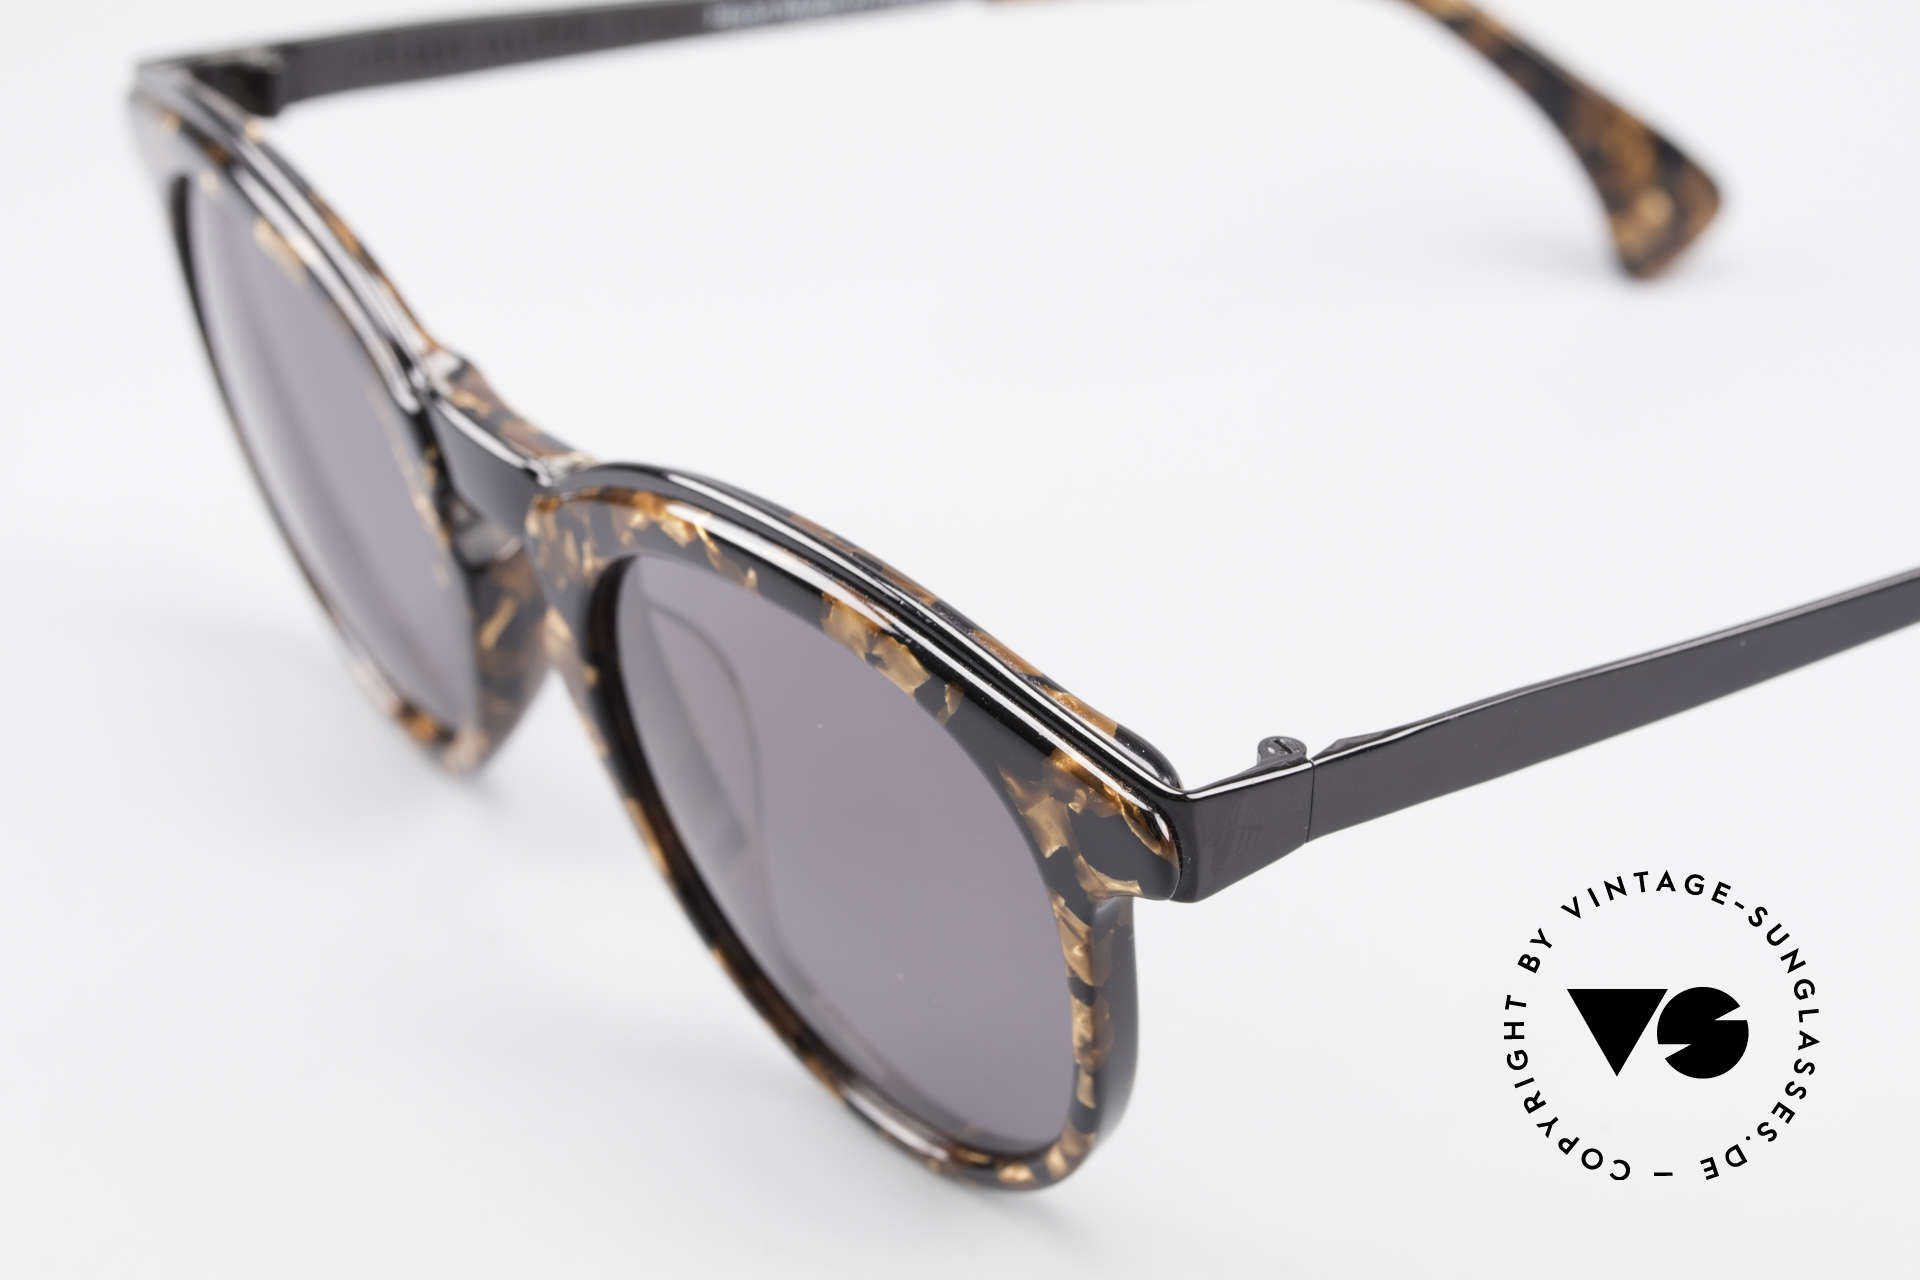 Alain Mikli 626 / 514 Rare Old 80's Panto Sunglasses, top craftsmanship & unique frame coloring / pattern, Made for Men and Women